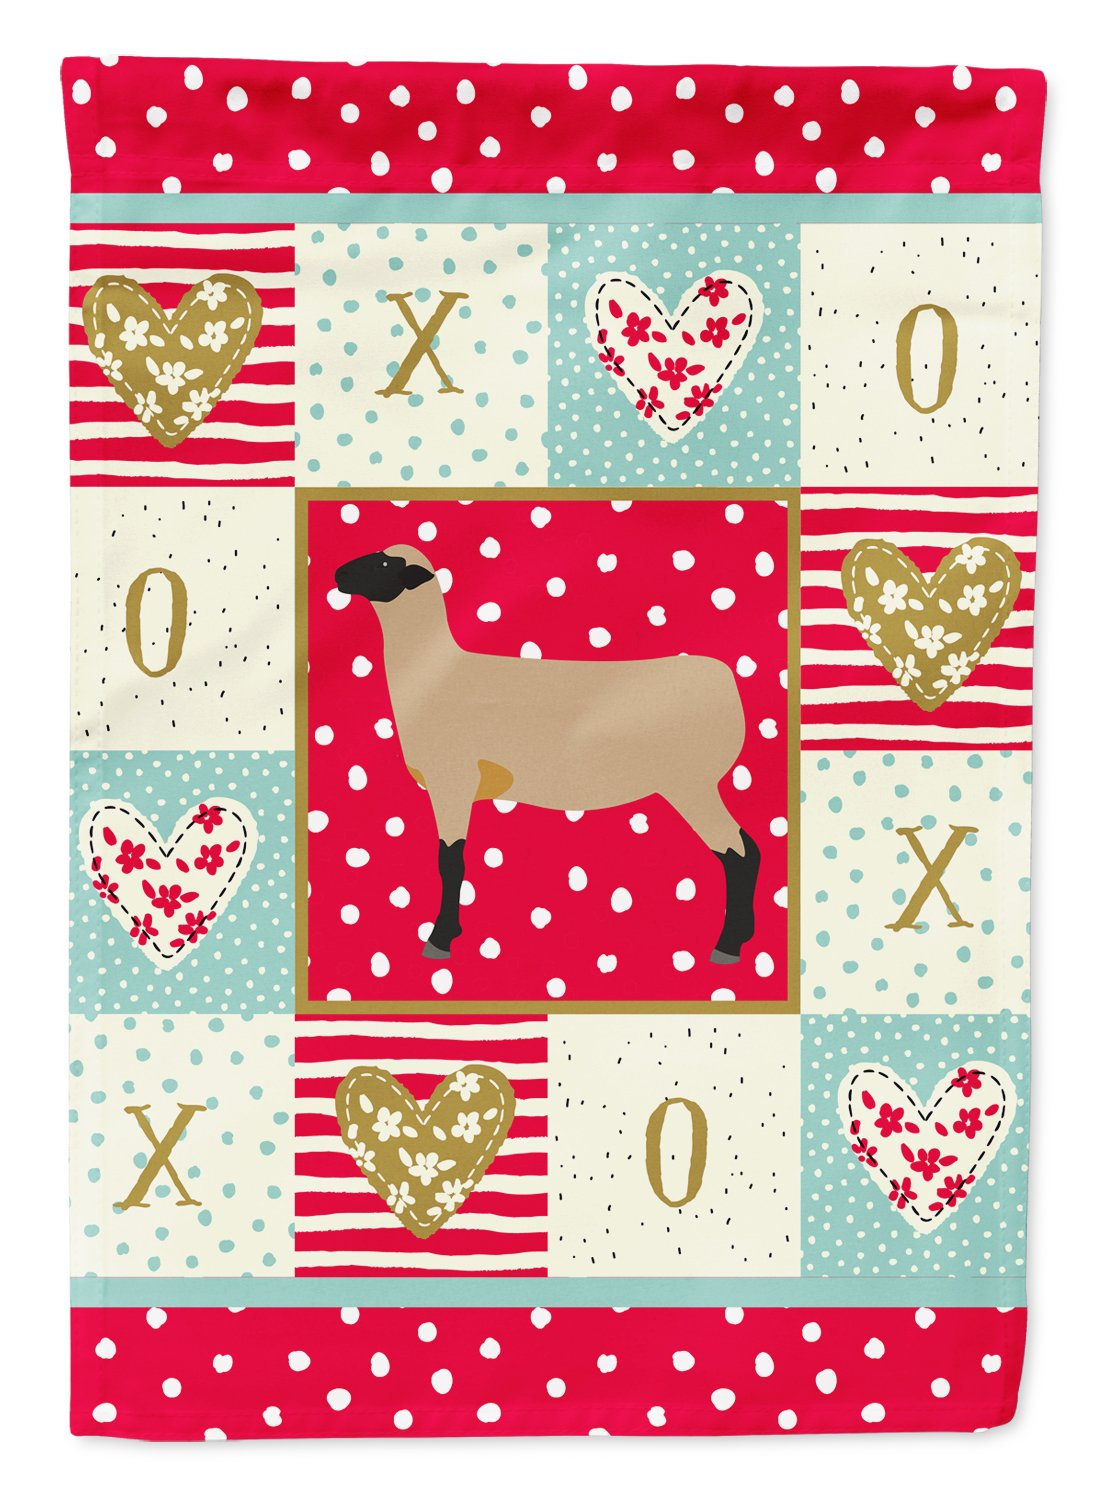 Hampshire Down Sheep Love Flag Garden Size CK5403GF by Caroline's Treasures